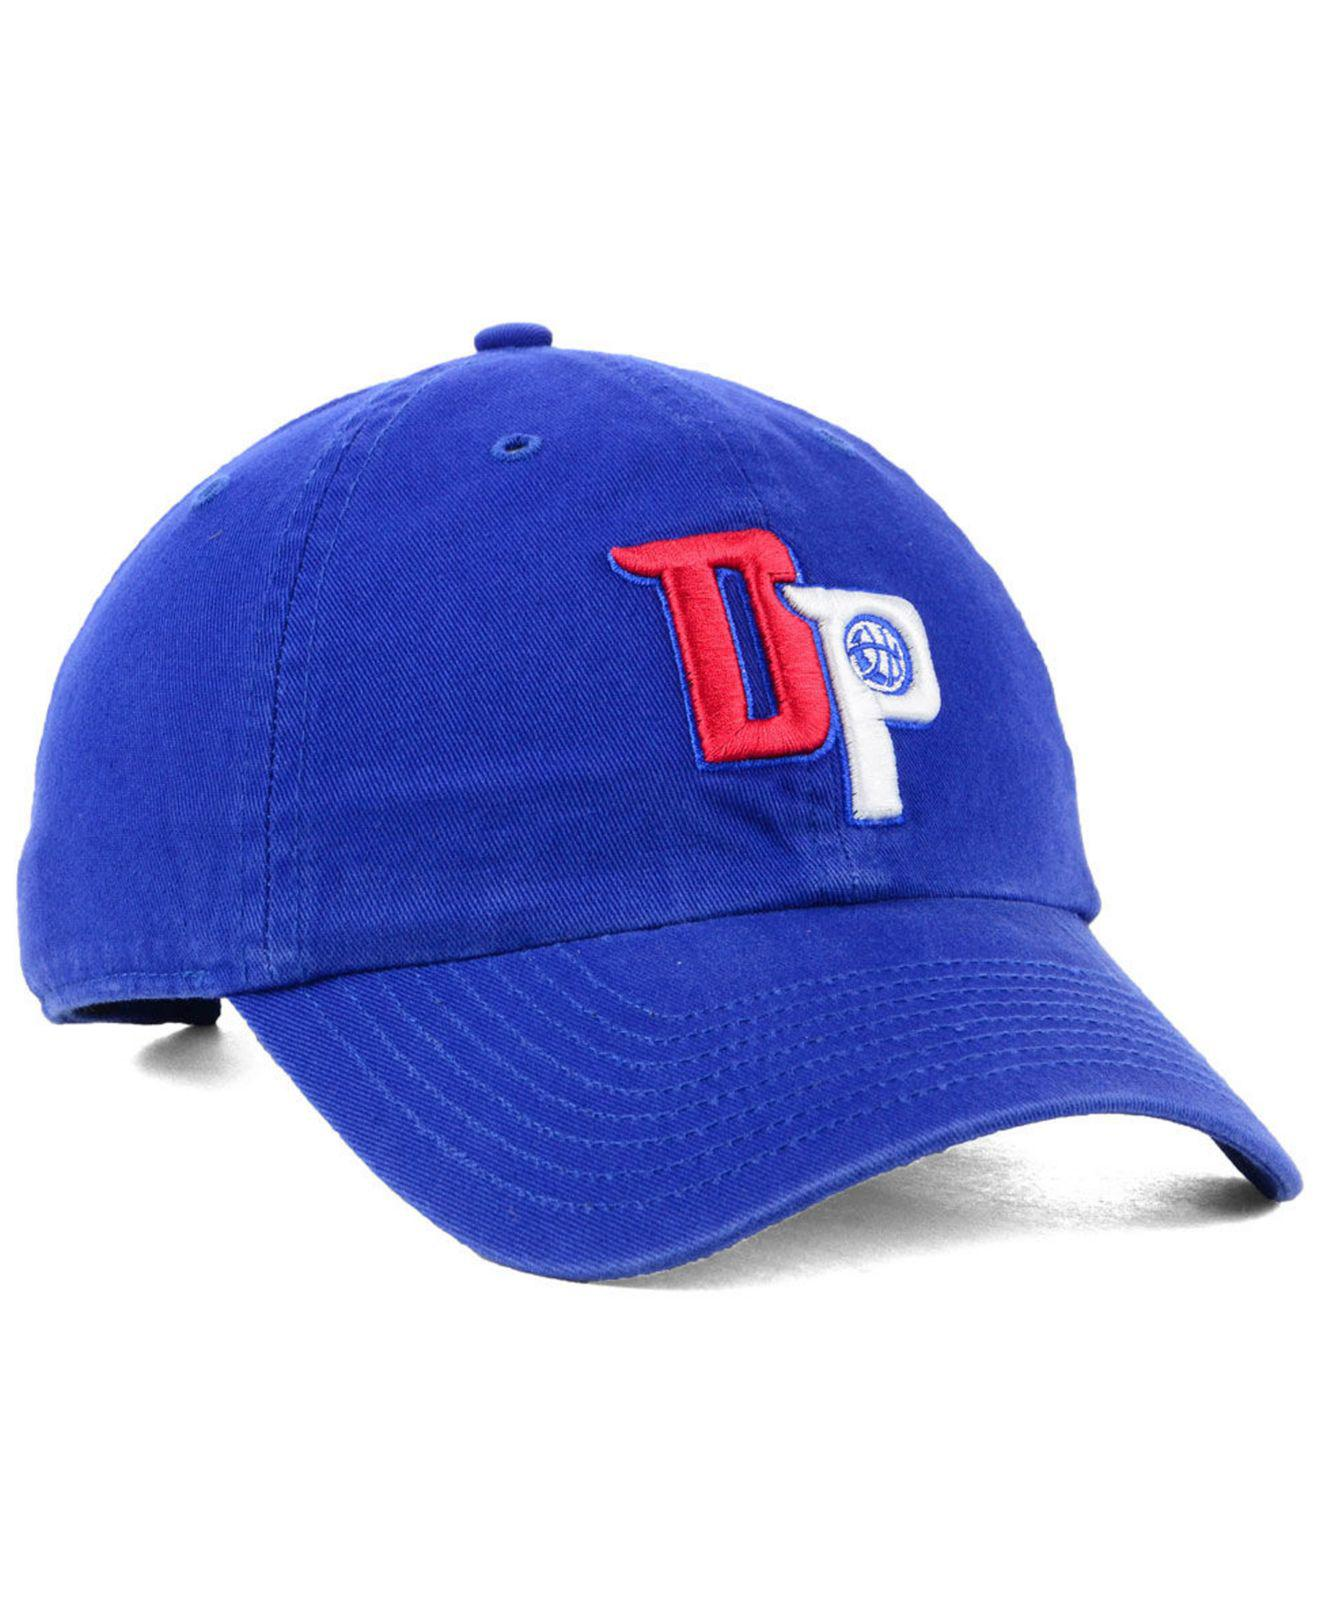 finest selection 4c5ba 04100 ... discount code for 47 brand blue detroit pistons mash up clean up cap for  men lyst